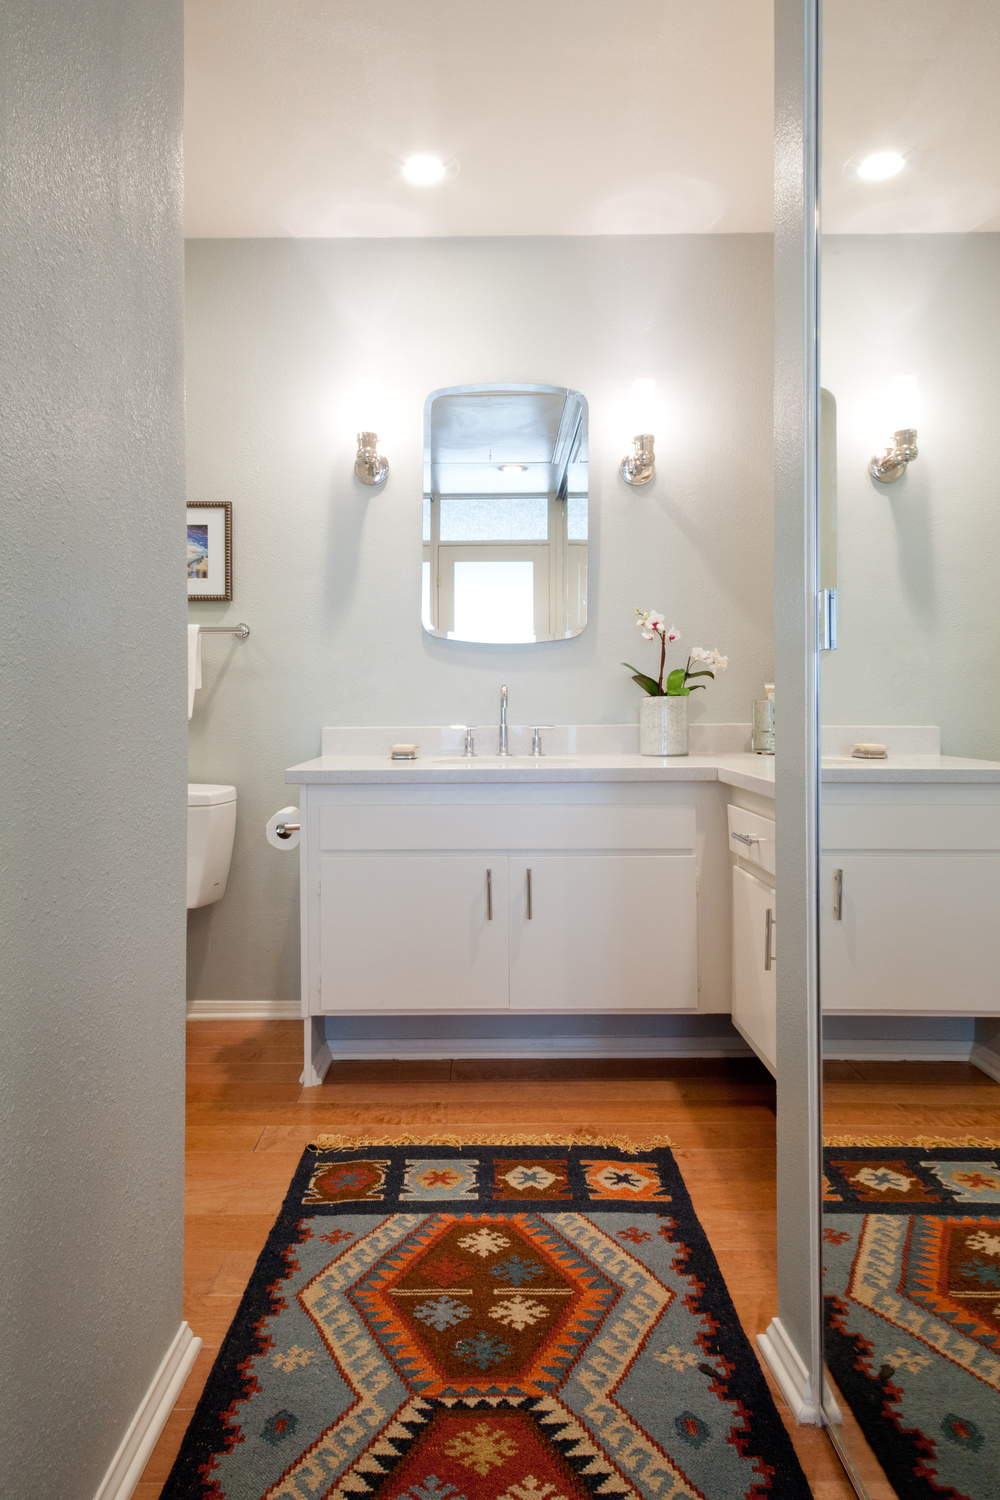 The bathroom after. photo by Amy Bartlam